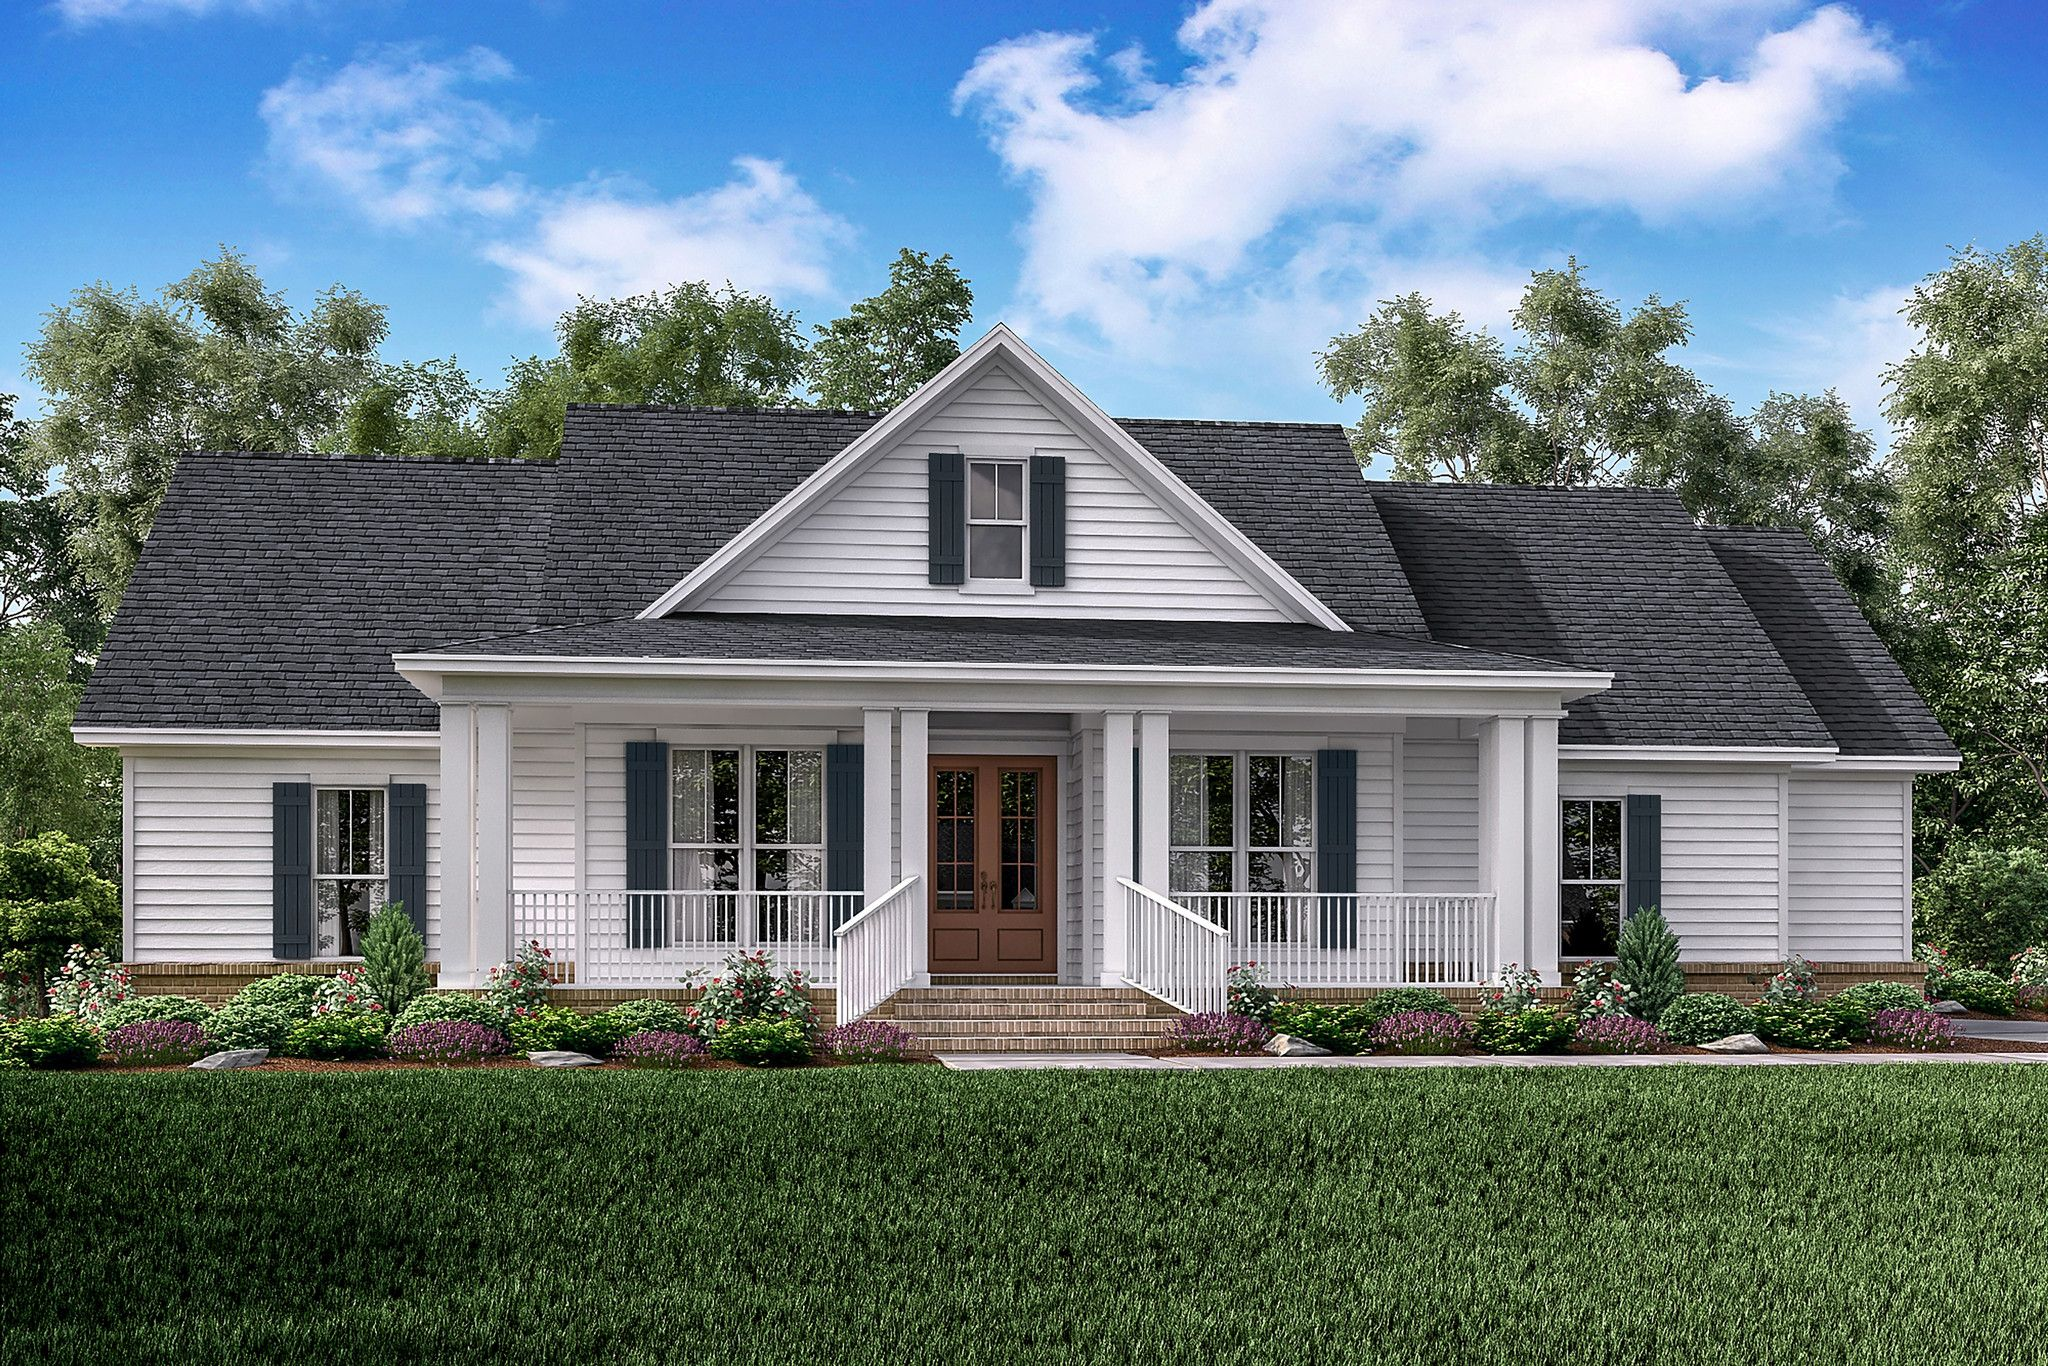 Lovely This Classic Country Farmhouse Plan Has Large Covered Porches On The Front  And Rear Of The Home. The Three Bedroom And Two And A Half Bath House Plan  Has A ... Good Looking